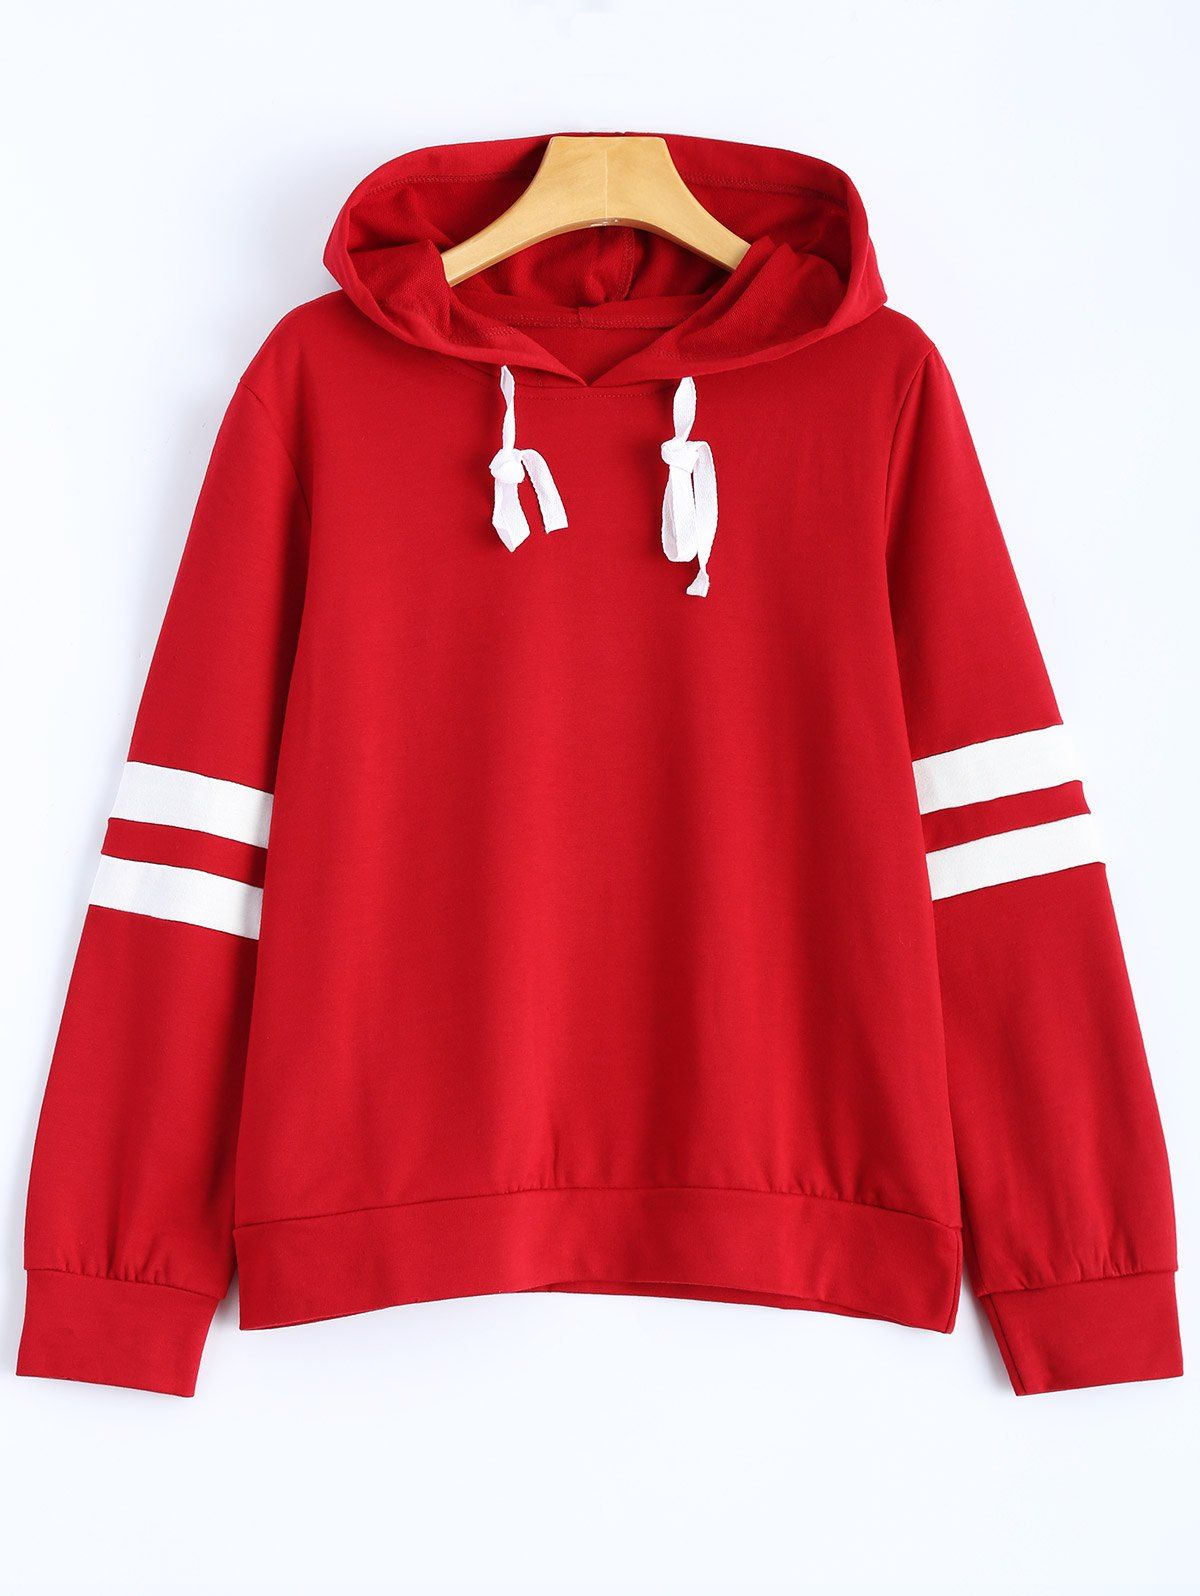 4b8c2c73 Stripes Pullover Hooded Sweatshirt | Stuff to buy | Sweatshirts ...